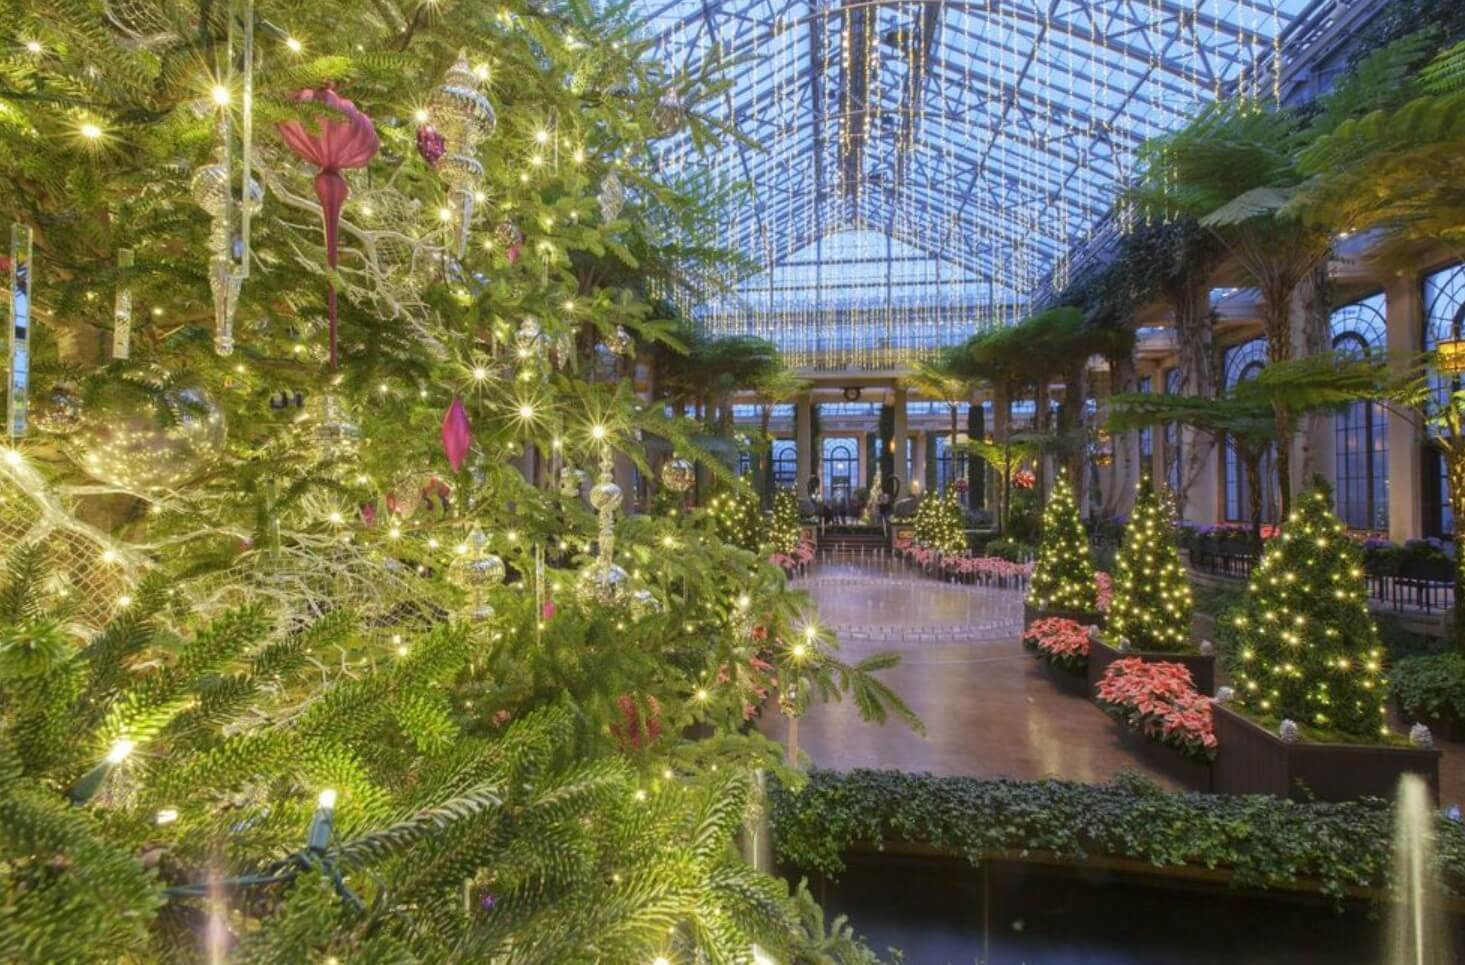 Longwood Gardens Named Winner of Best Botanical Garden Holiday Lights by USA Today Readers